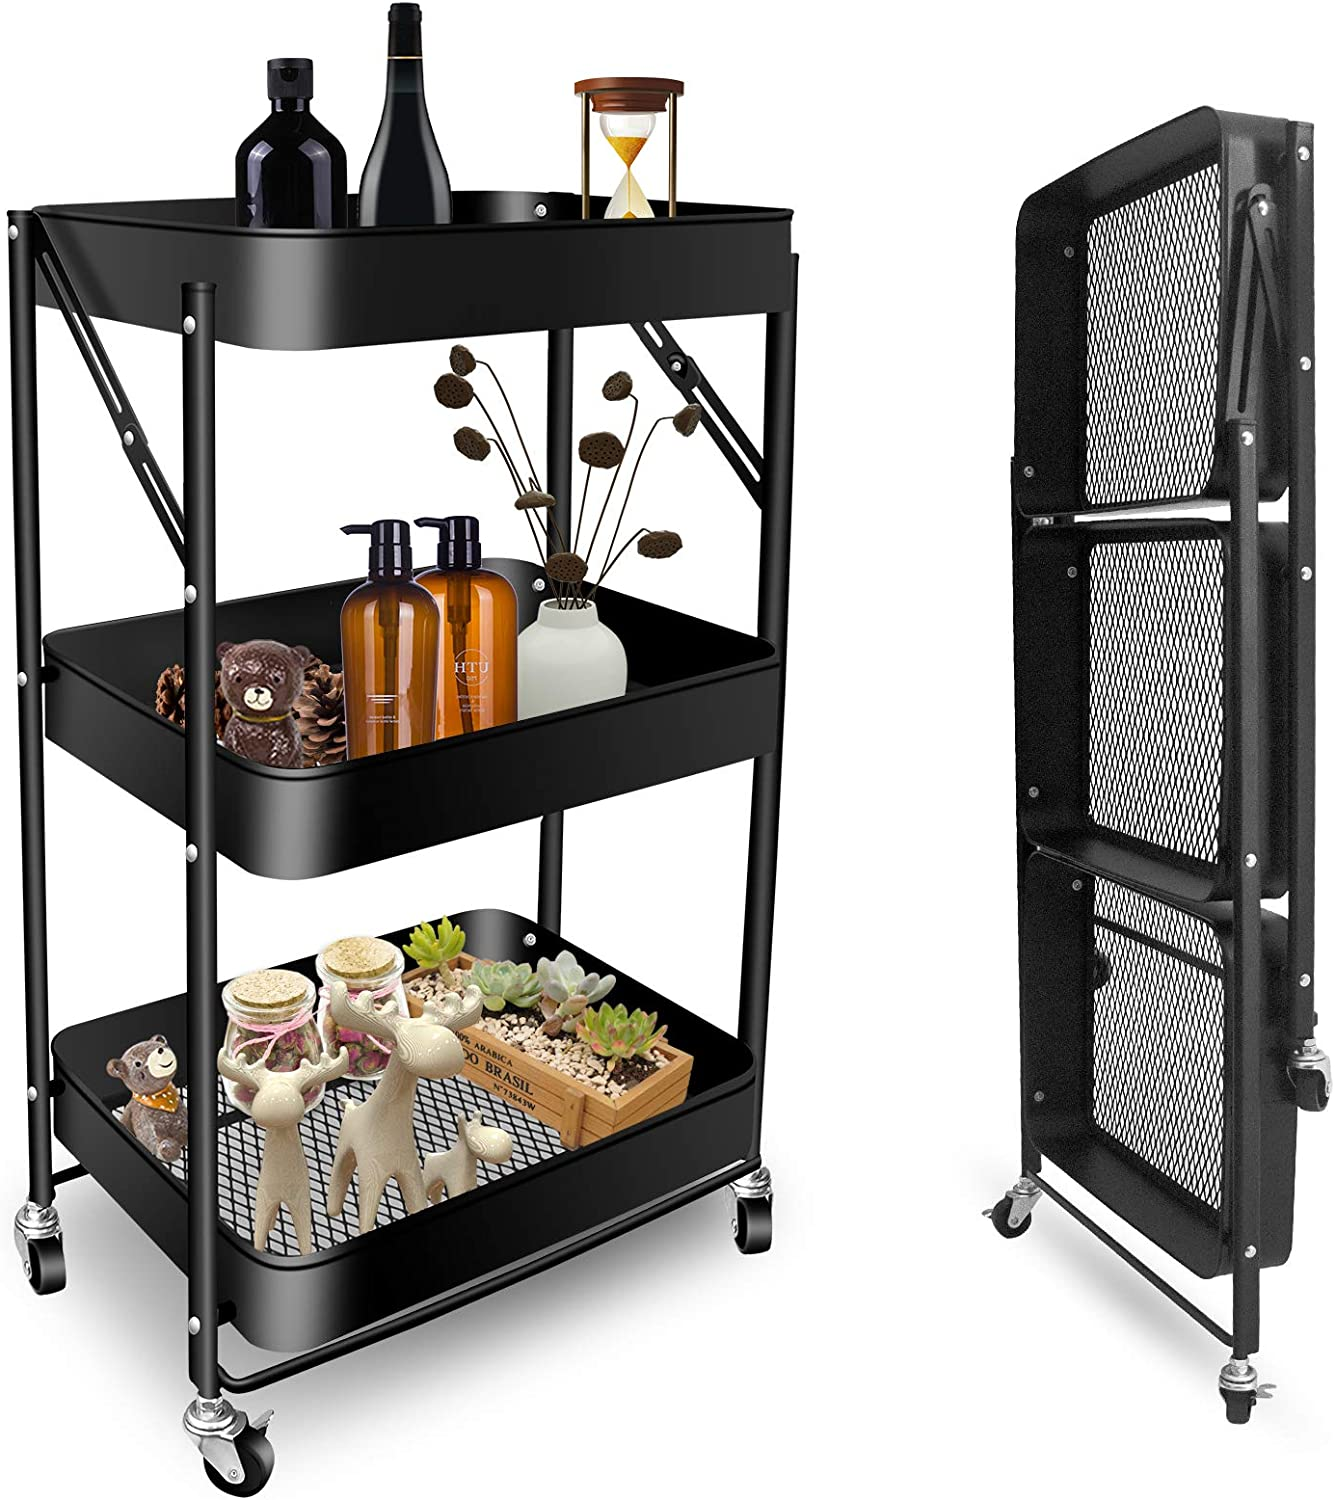 Psukhai 3 Tier Foldable Rolling Cart with Wheels Folding Utility Storage Cart, Metal Roller Kitchen Trolley Cart for Living Room,Bedroom,Classroom, Black